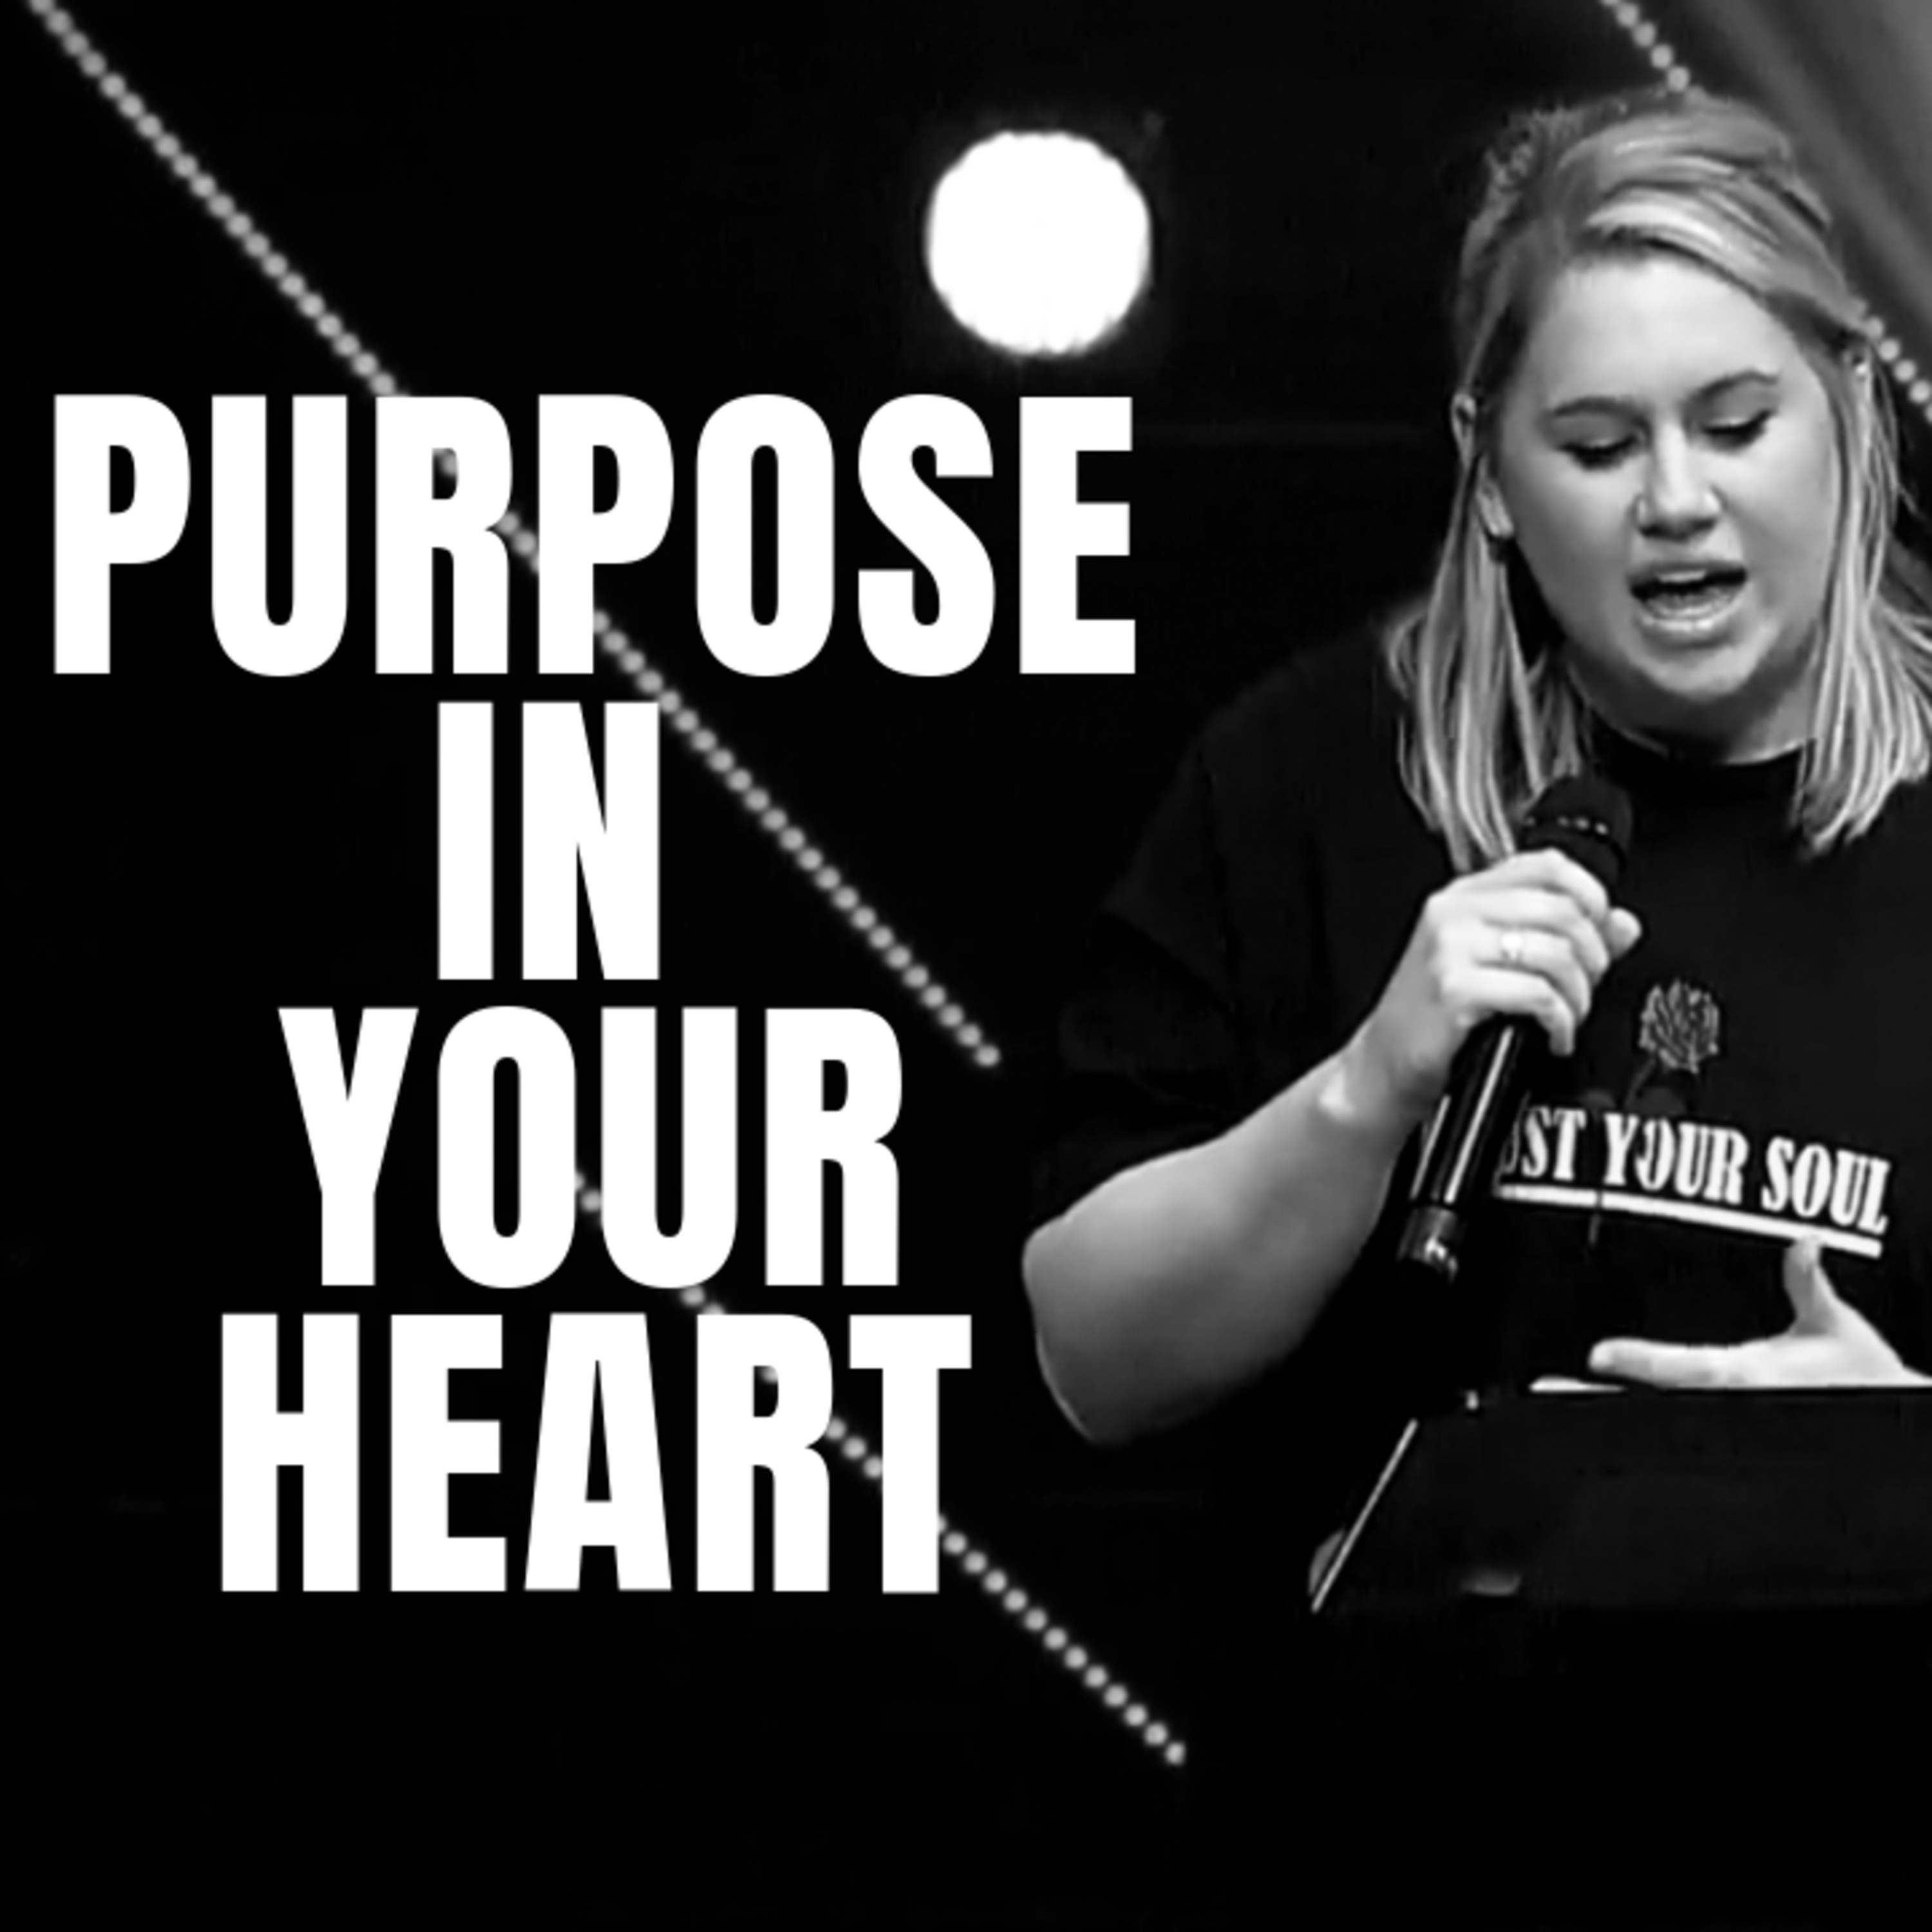 PURPOSE IN YOUR HEART